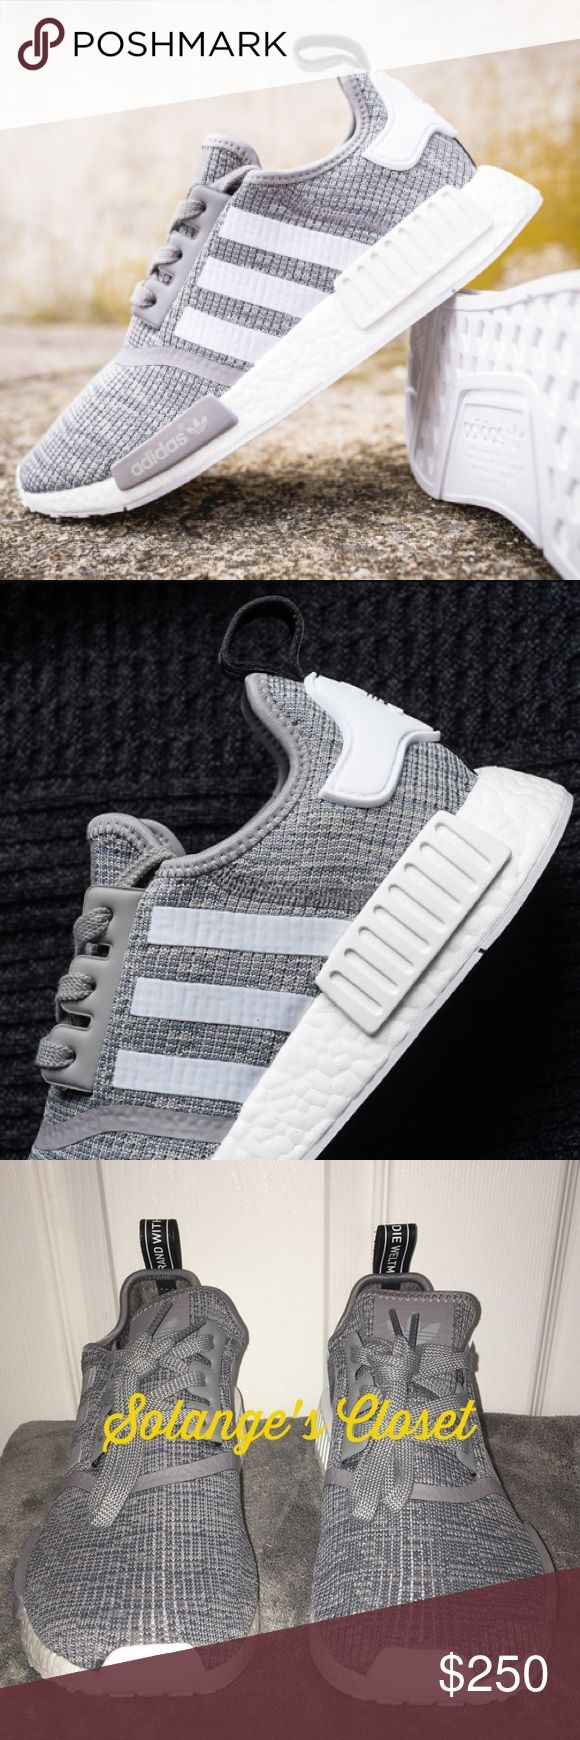 ADIDAS NMD R1 SNEAKERS -Size 6 Men- Will fit Women 6-7!   -100% AUTHENTIC & COMES WITH BOX & RECEIPT FROM ADIDAS.COM!  -NO FLAWS! -Price is firm on this item due to rarity of colorway and size.  WILL LIST ON VINTED OR FASHION STASH LOWER💕  🚫NO TRADES/HOLDS🚫 Adidas Shoes Sneakers